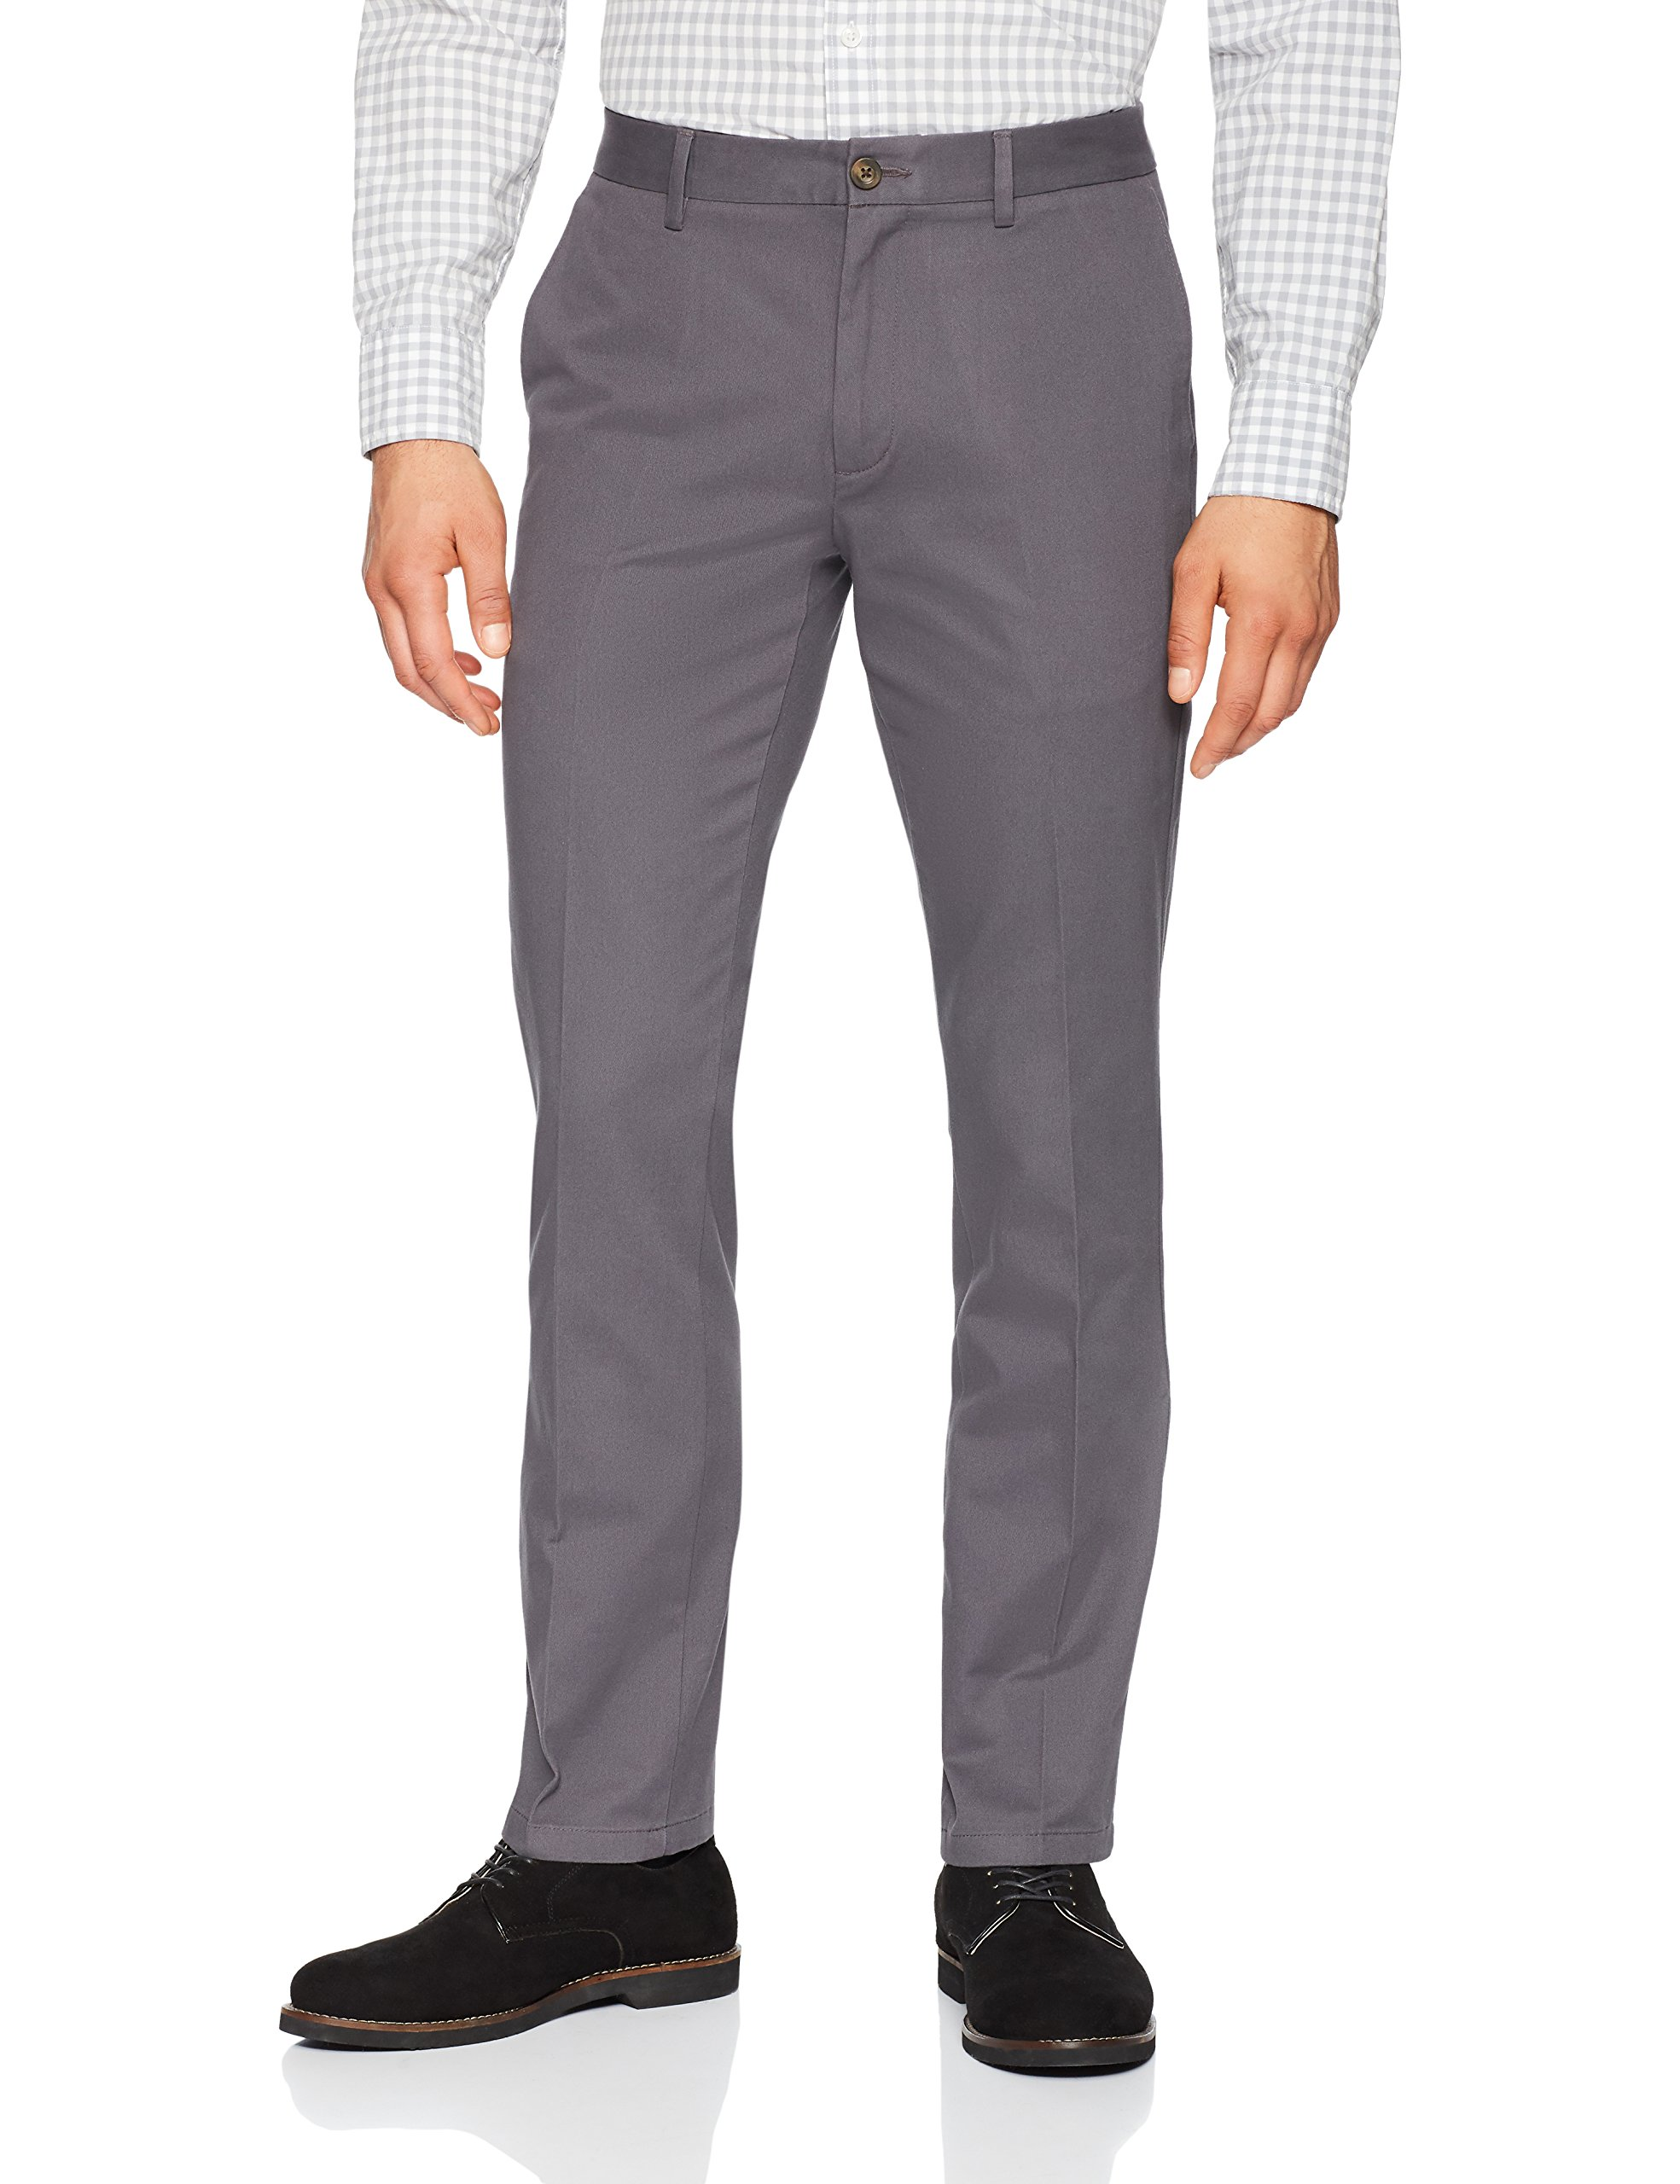 Amazon Essentials Men's Slim-Fit Wrinkle-Resistant Flat-Front Chino Pant, Grey, 33W x 30L